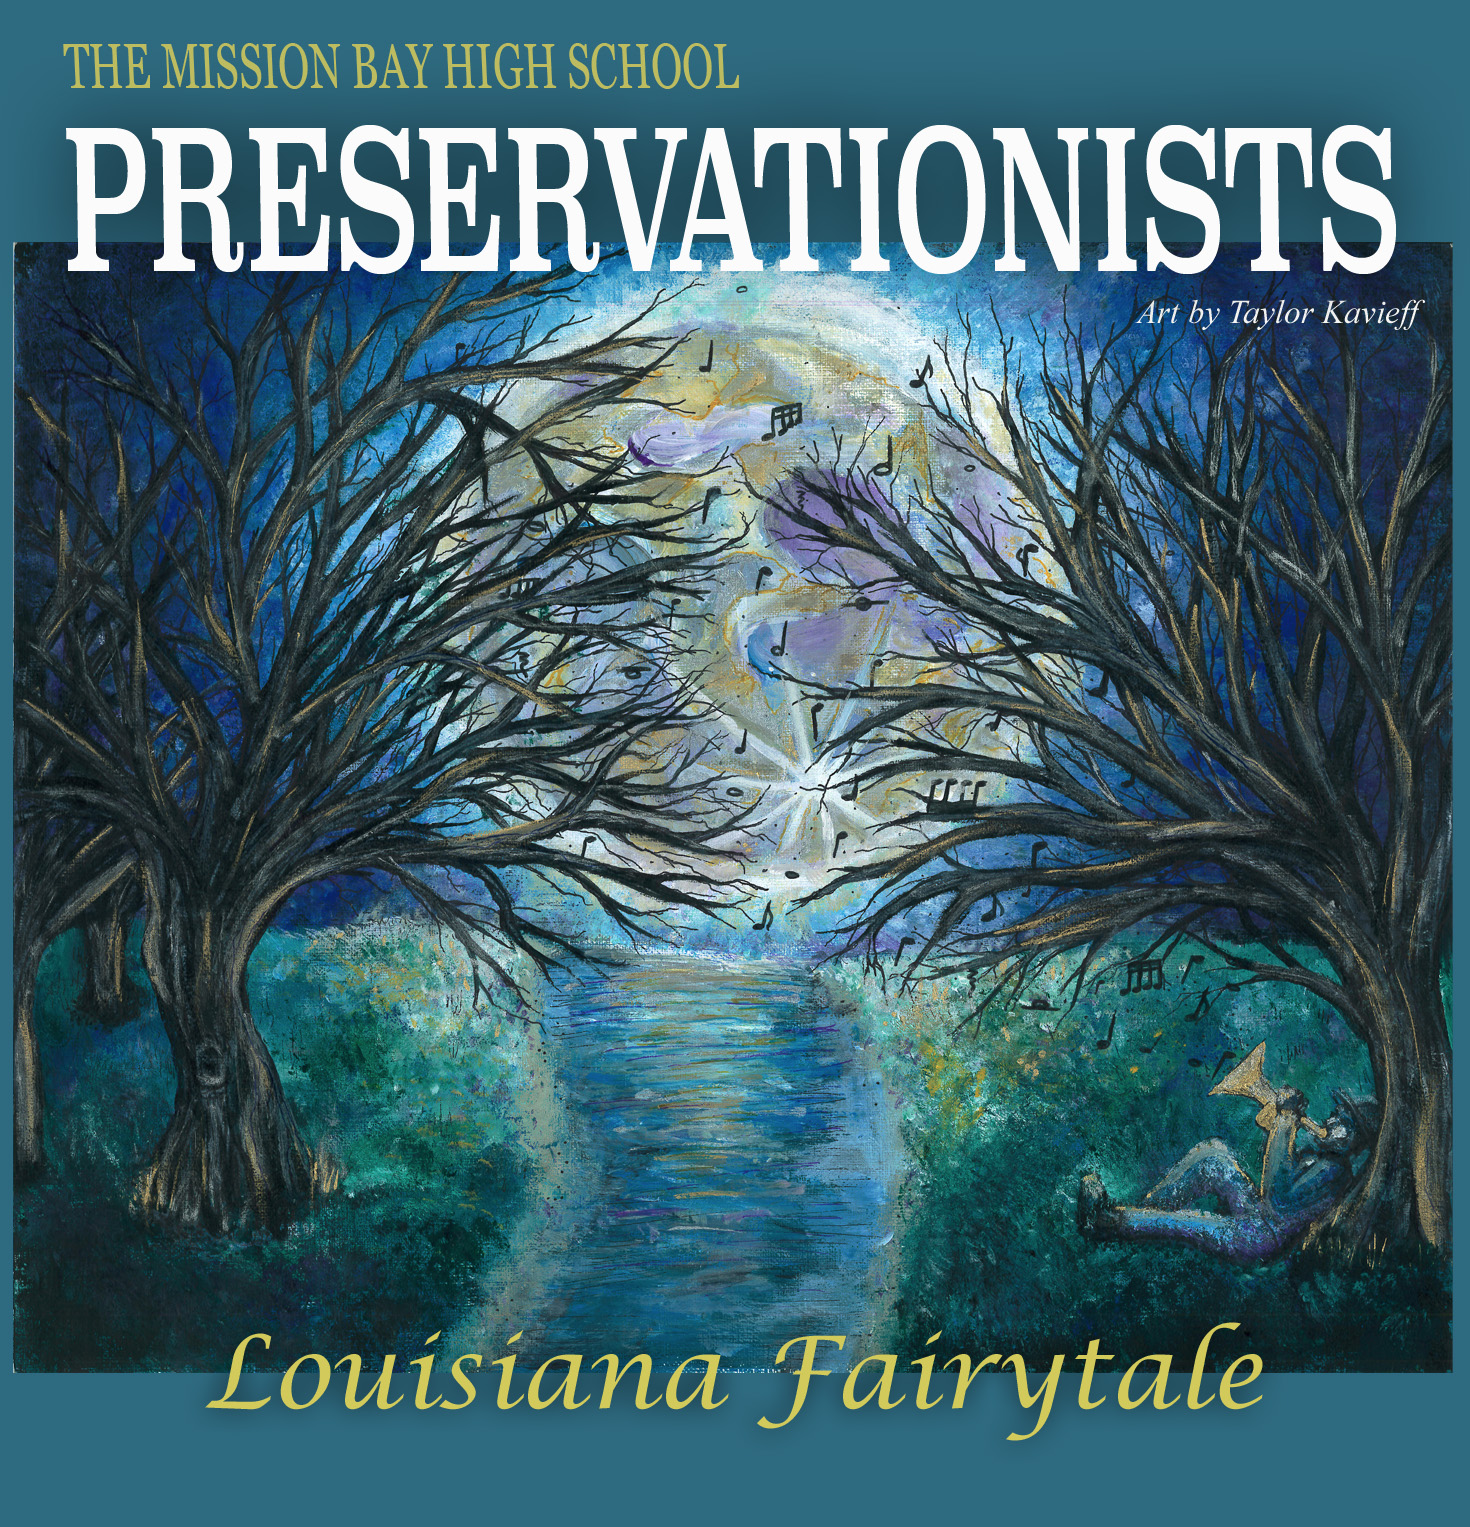 Louisiana Fairytale - 2017